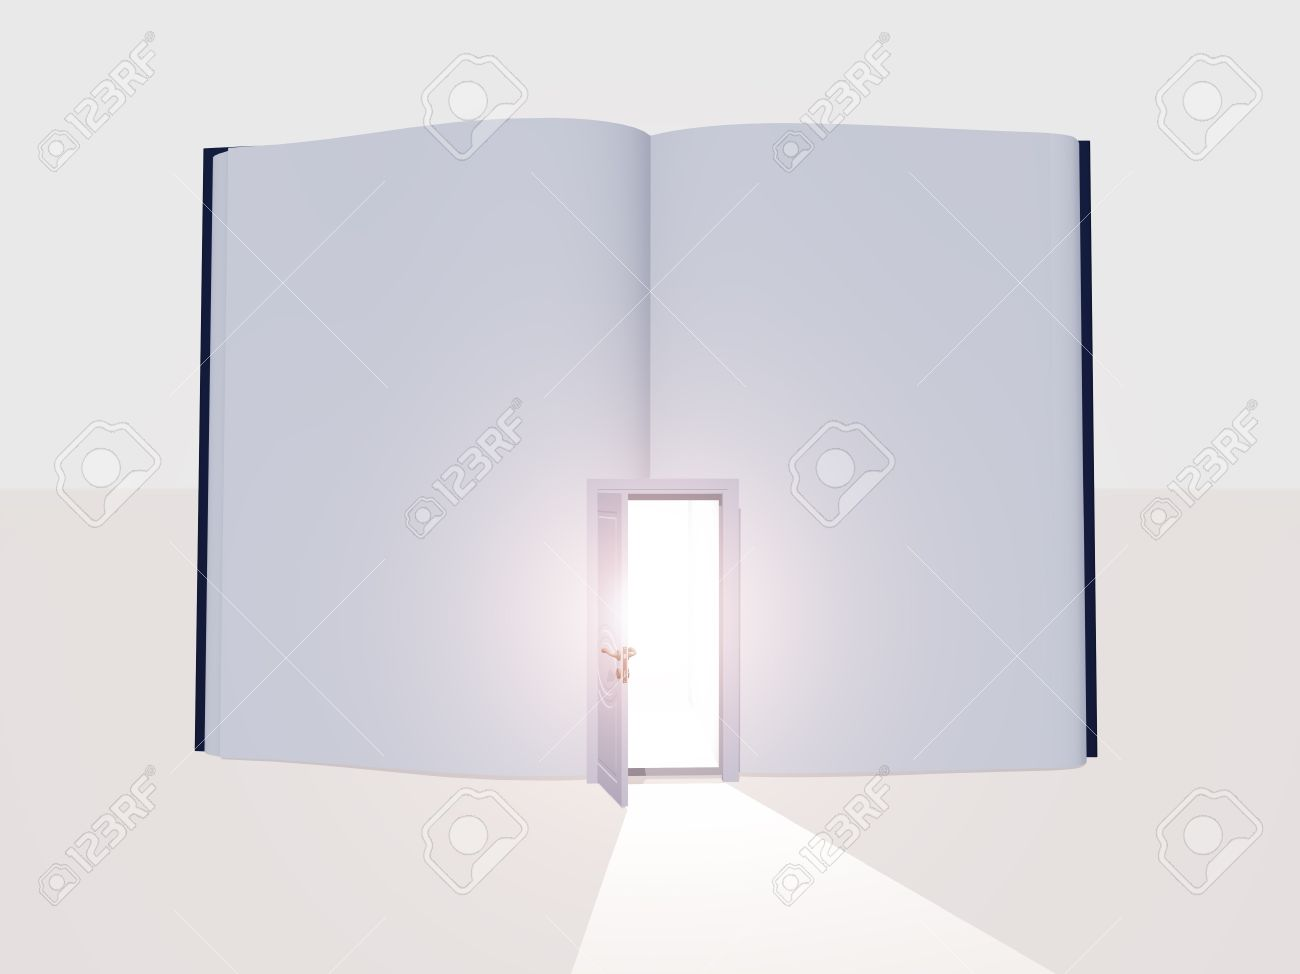 Book with open door Stock Photo - 13834001 & Book With Open Door Stock Photo Picture And Royalty Free Image ...